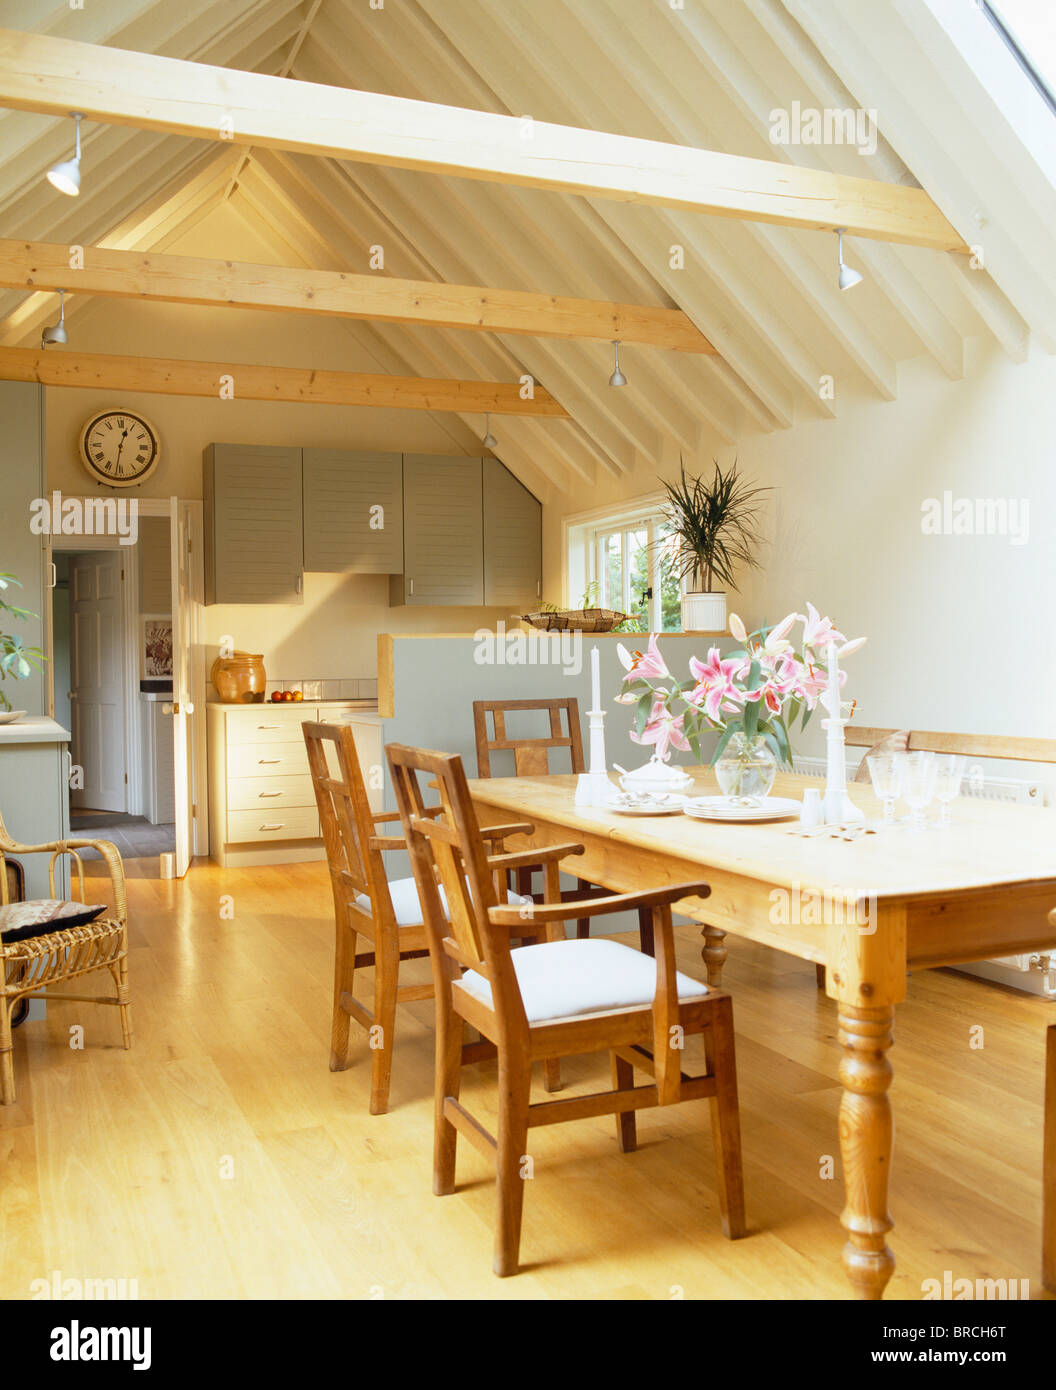 Wooden Chairs And Pine Table In Traditional Kitchen Small Barn Conversion With Beamed Apex Ceiling